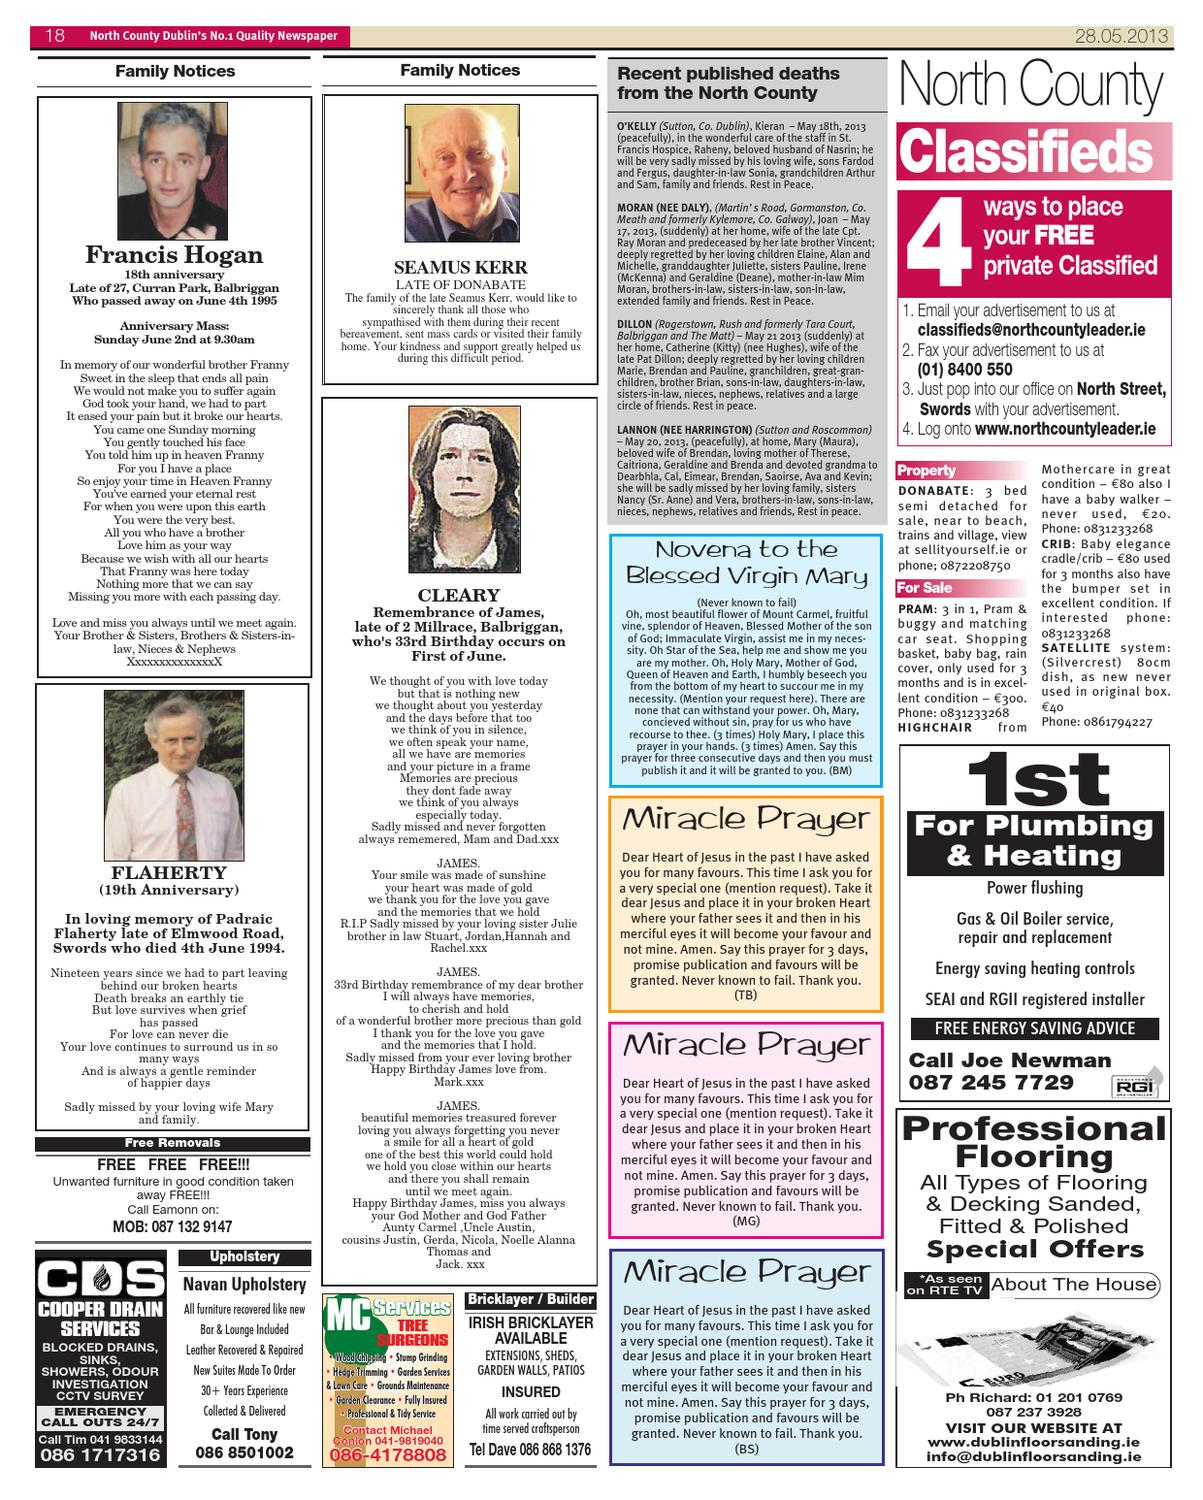 North County Leader 28th May 2013 by sean fitzmaurice - issuu